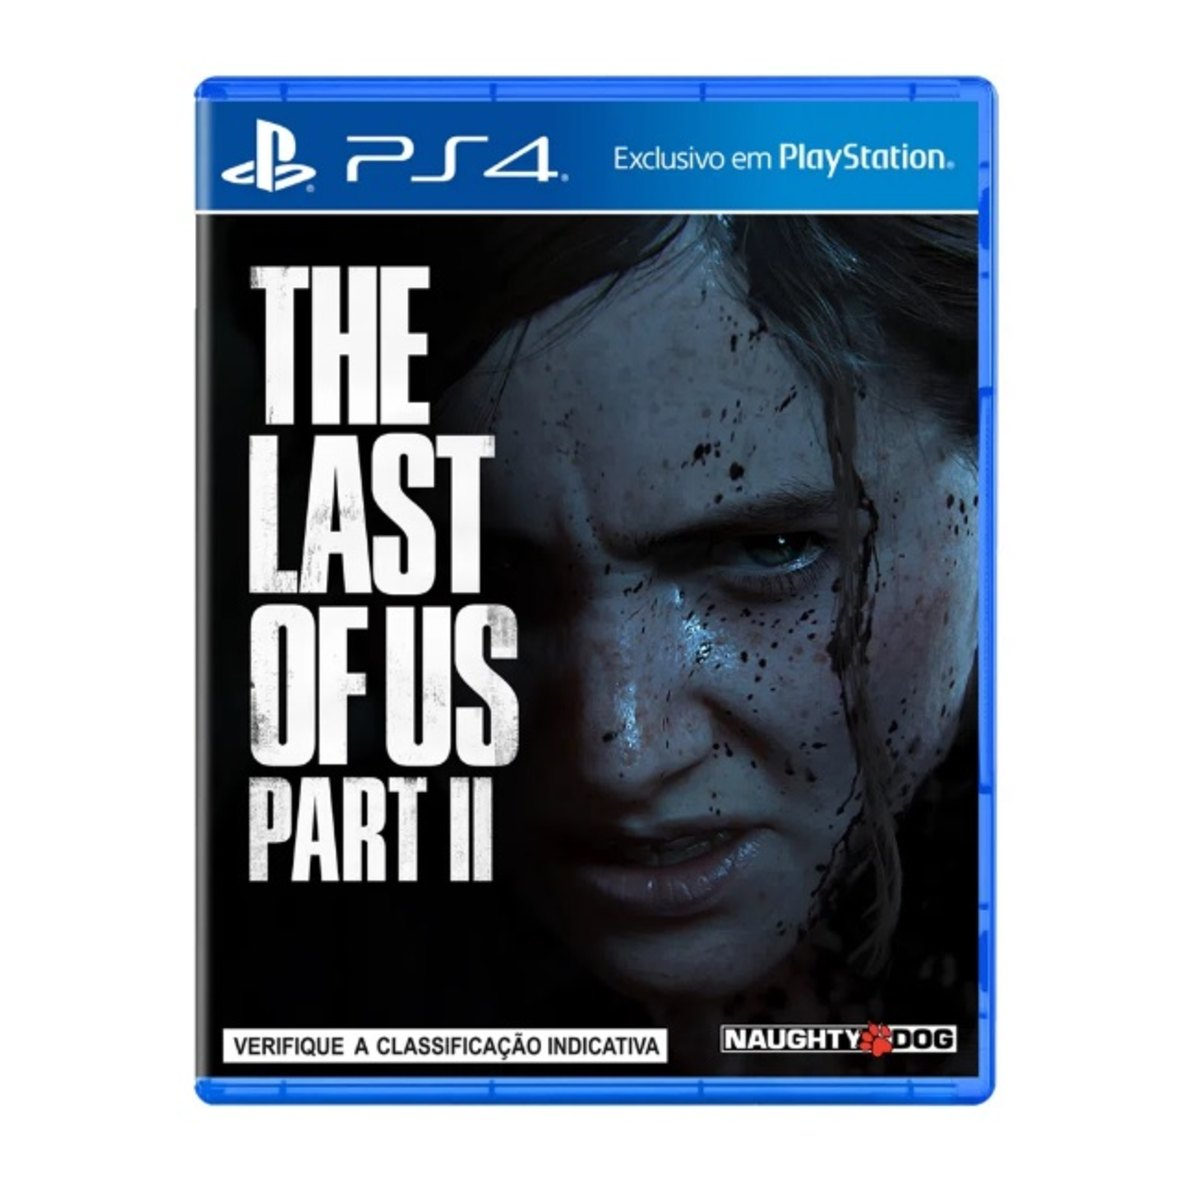 27807901614110 - Carrefour - The Last Of Us - Part II - R$ 245,52 - THELAST10